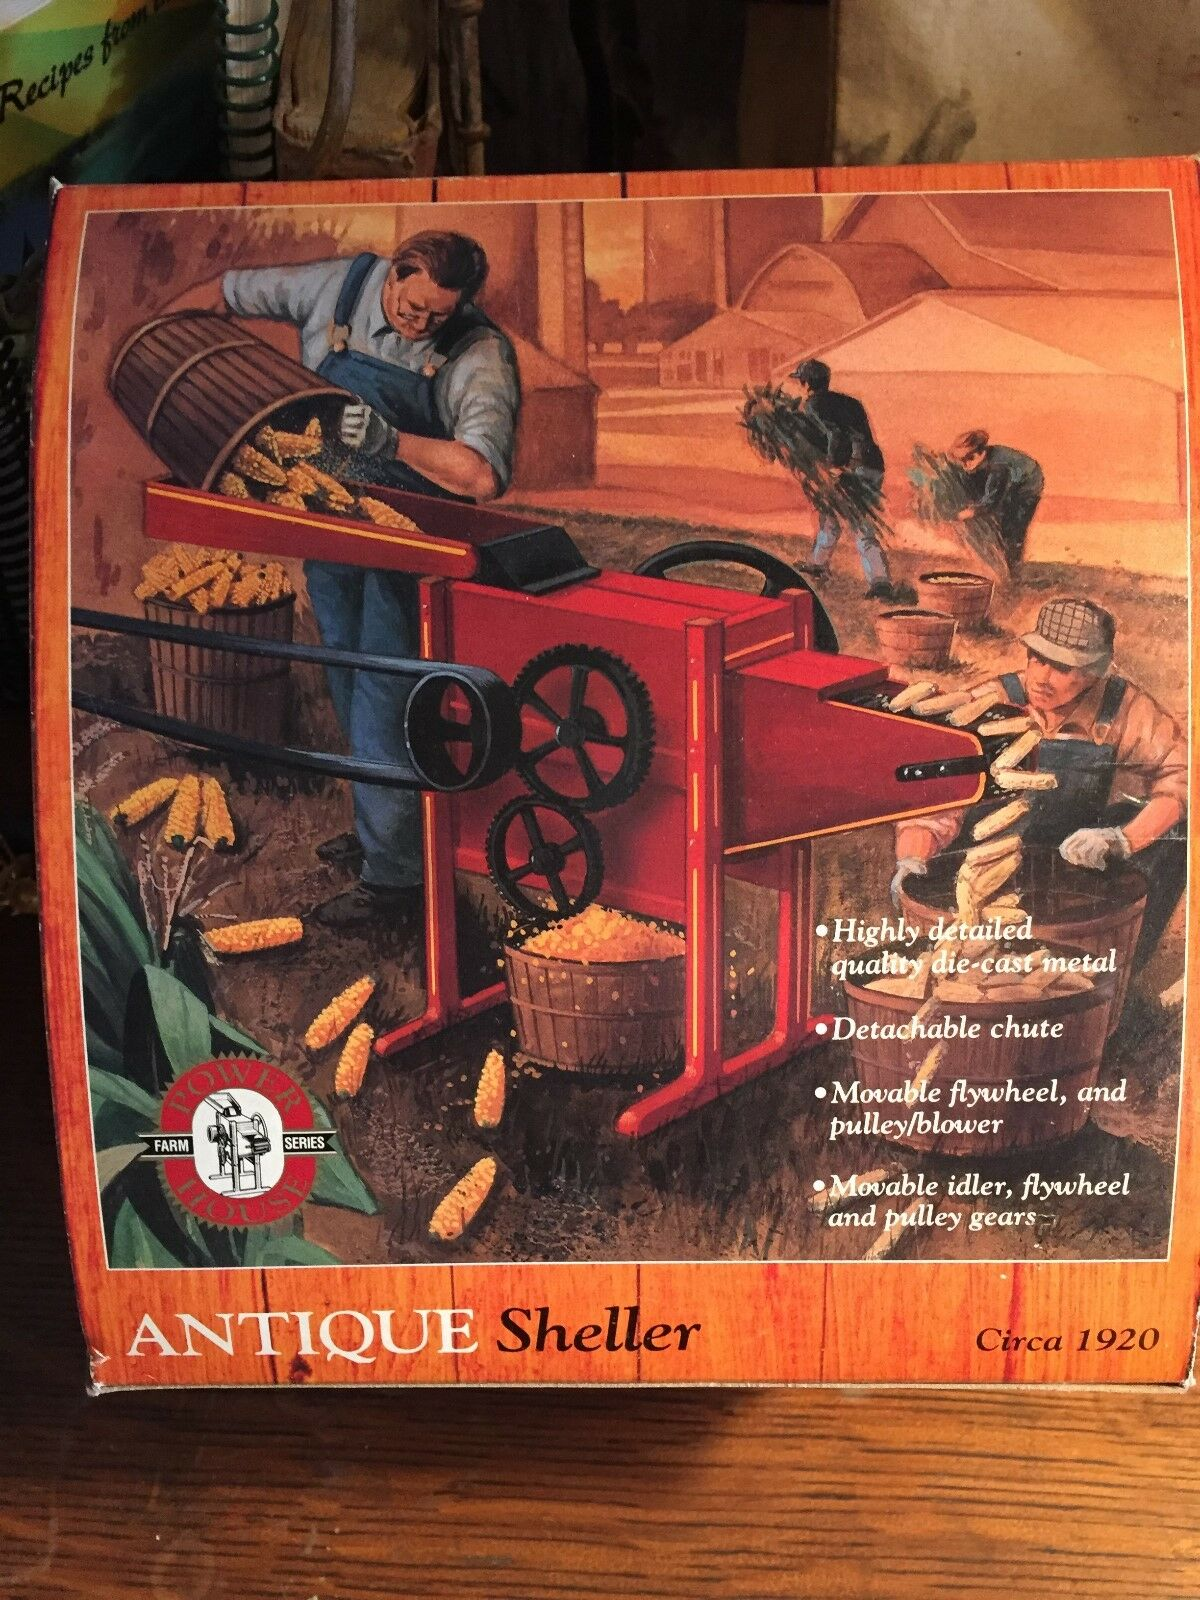 Ertl Toy Corn Sheller,  1 8th Scale, in the box, Excellent condition  parfait